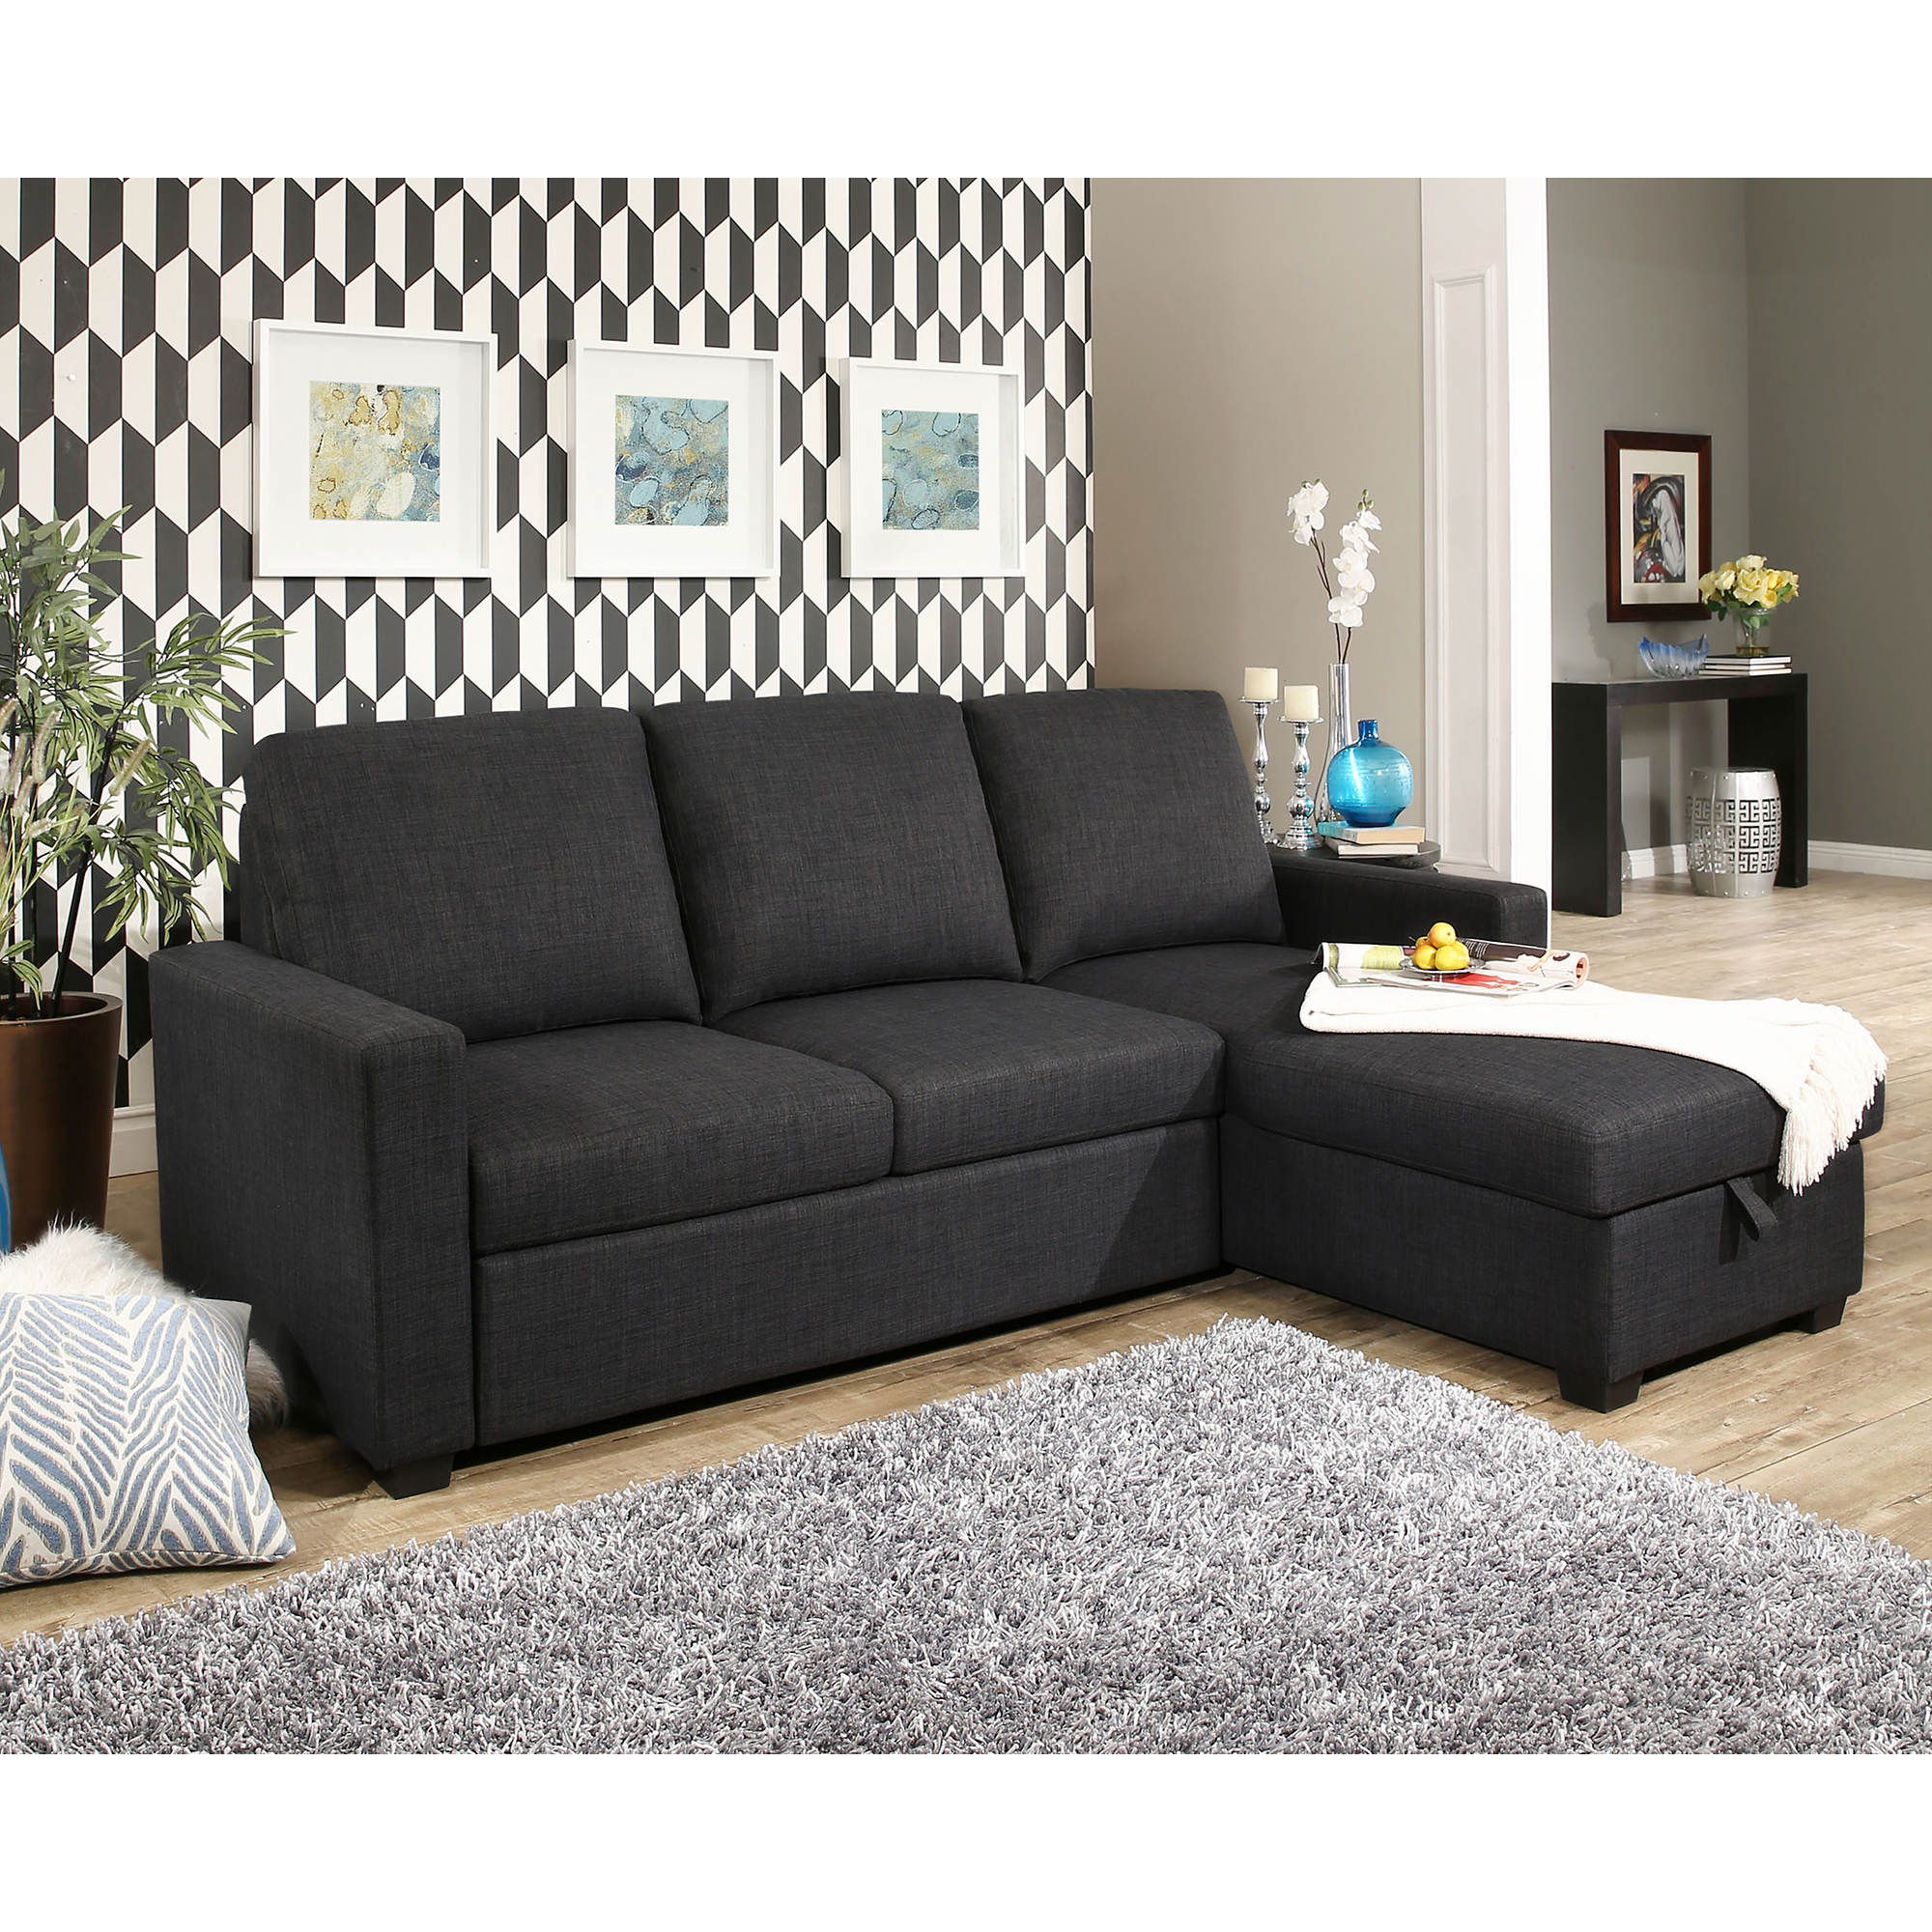 chaise sofa sectional bjs imageservice wholesale abbyson living imageid club product recipeid waldorf profileid